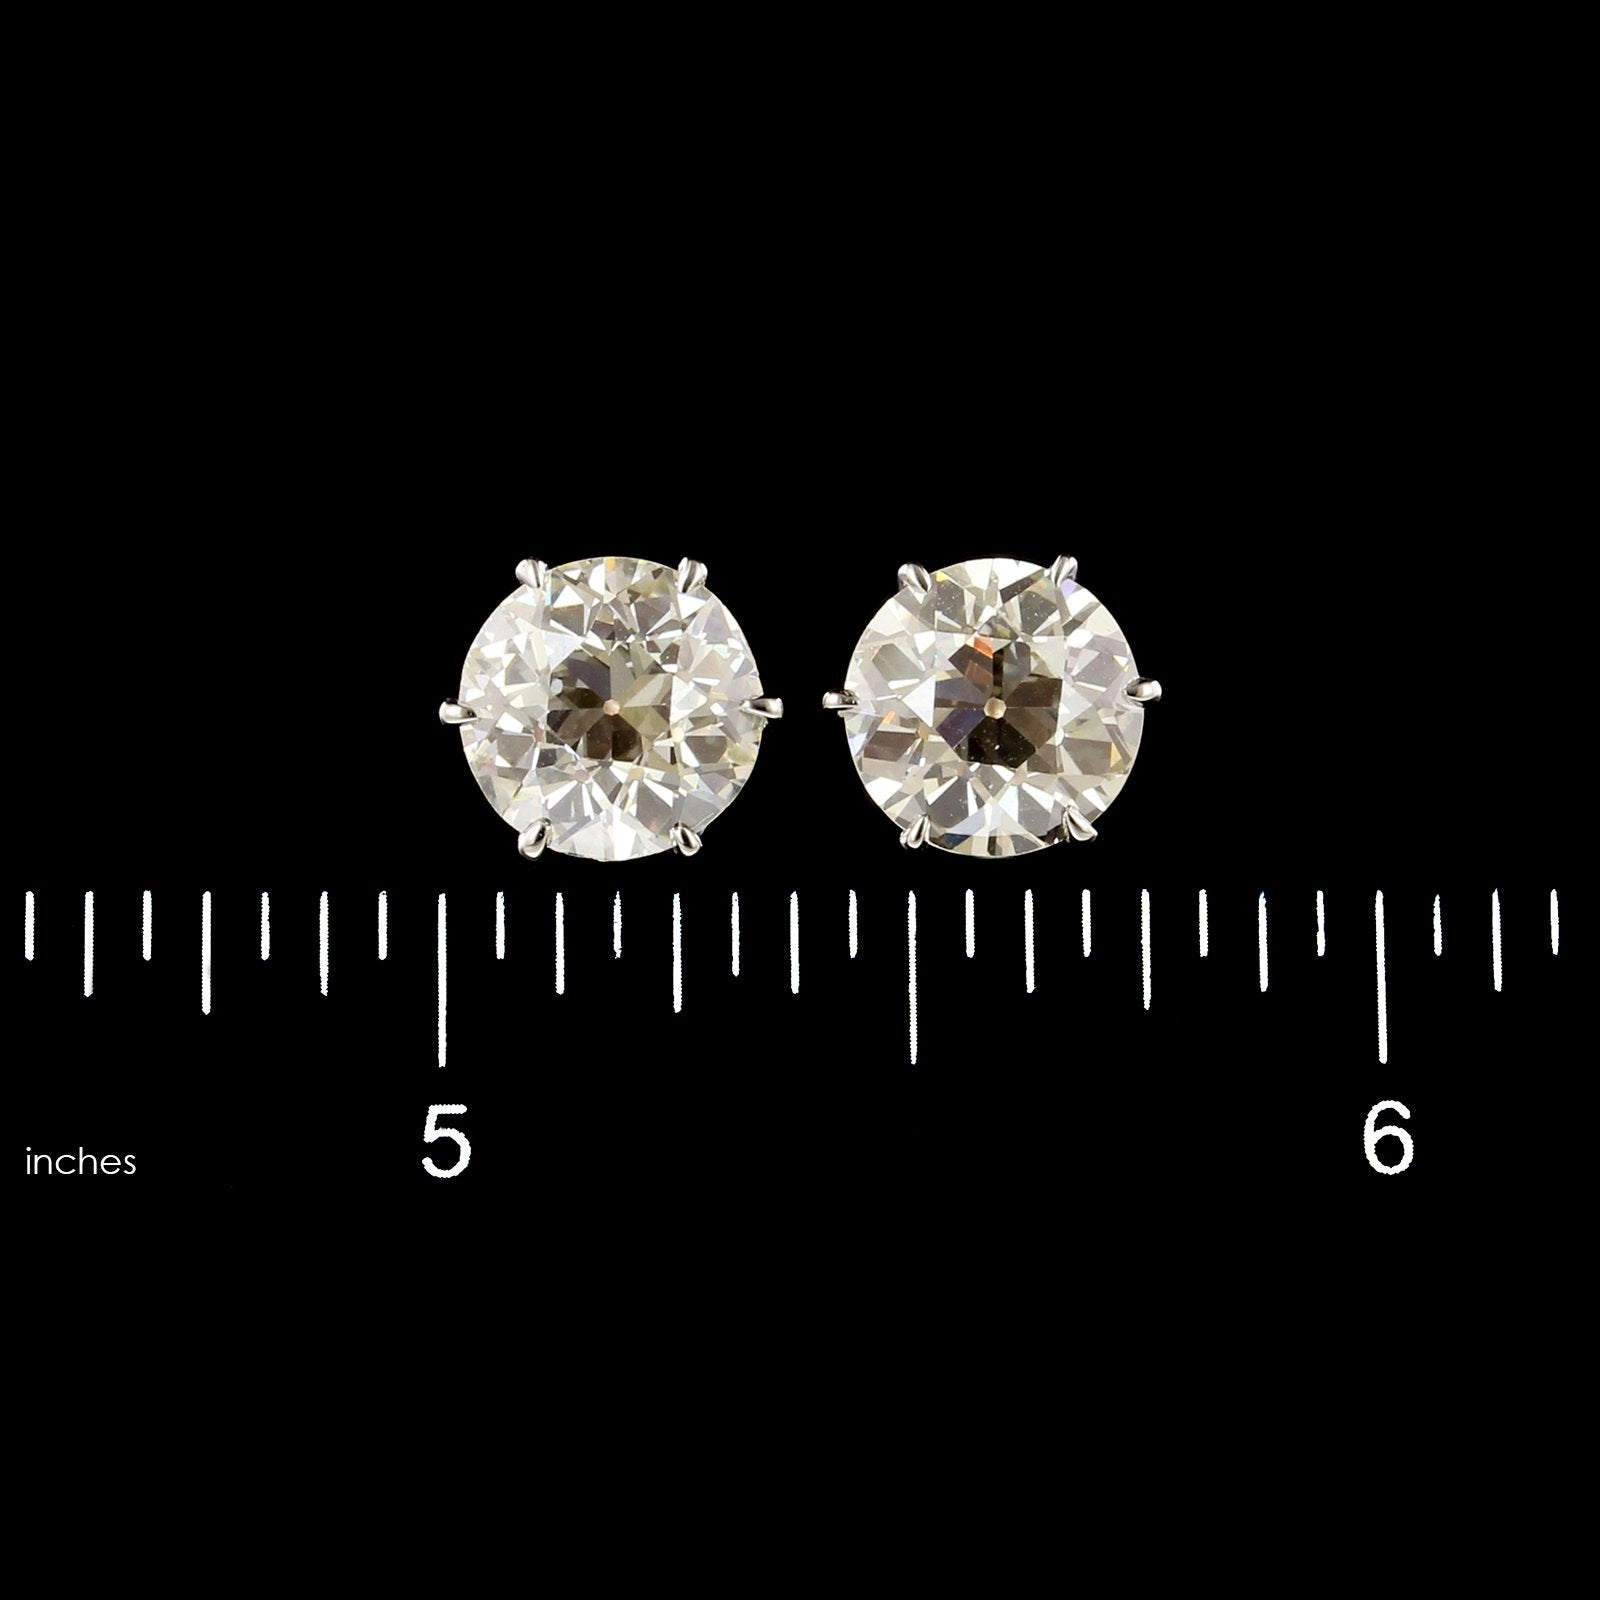 Antique Platinum and 14K Yellow Gold Estate Diamond Studs